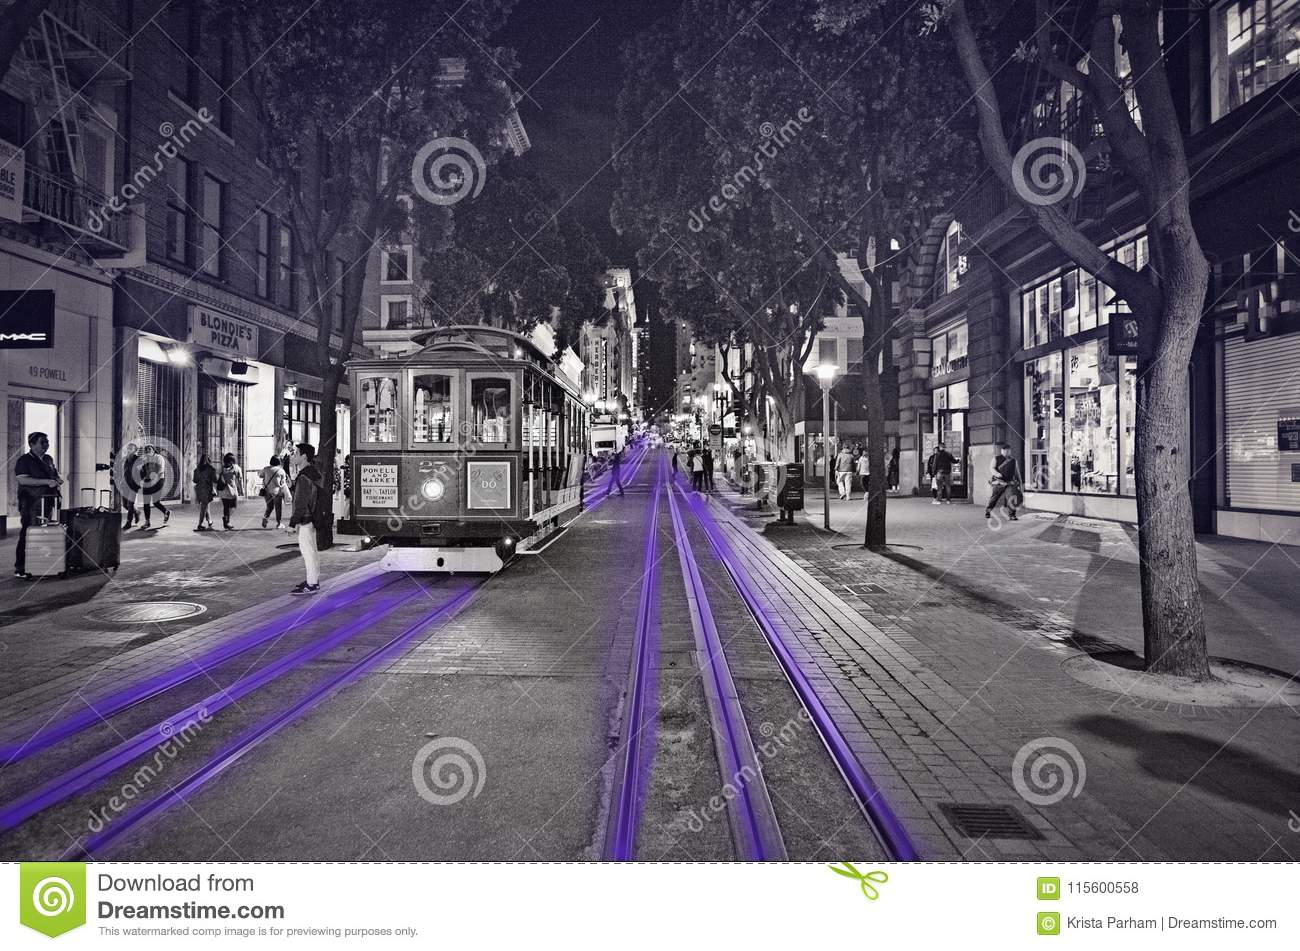 San francisco street car at night black and white with purple accent